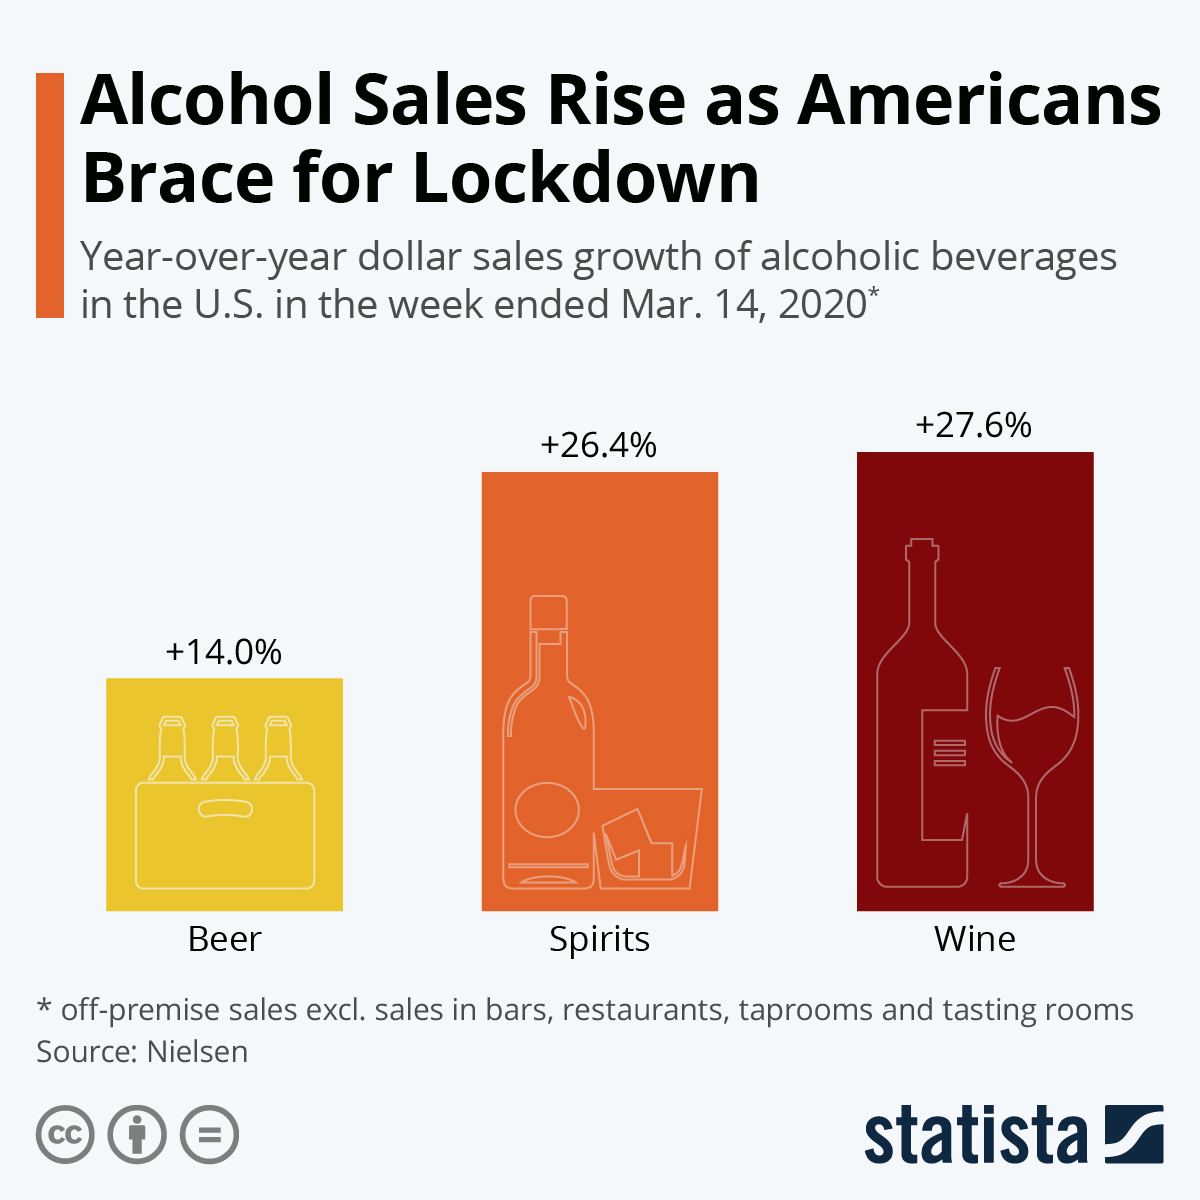 Alcohol Sales Rise as Americans Brace for Lockdown #infographic